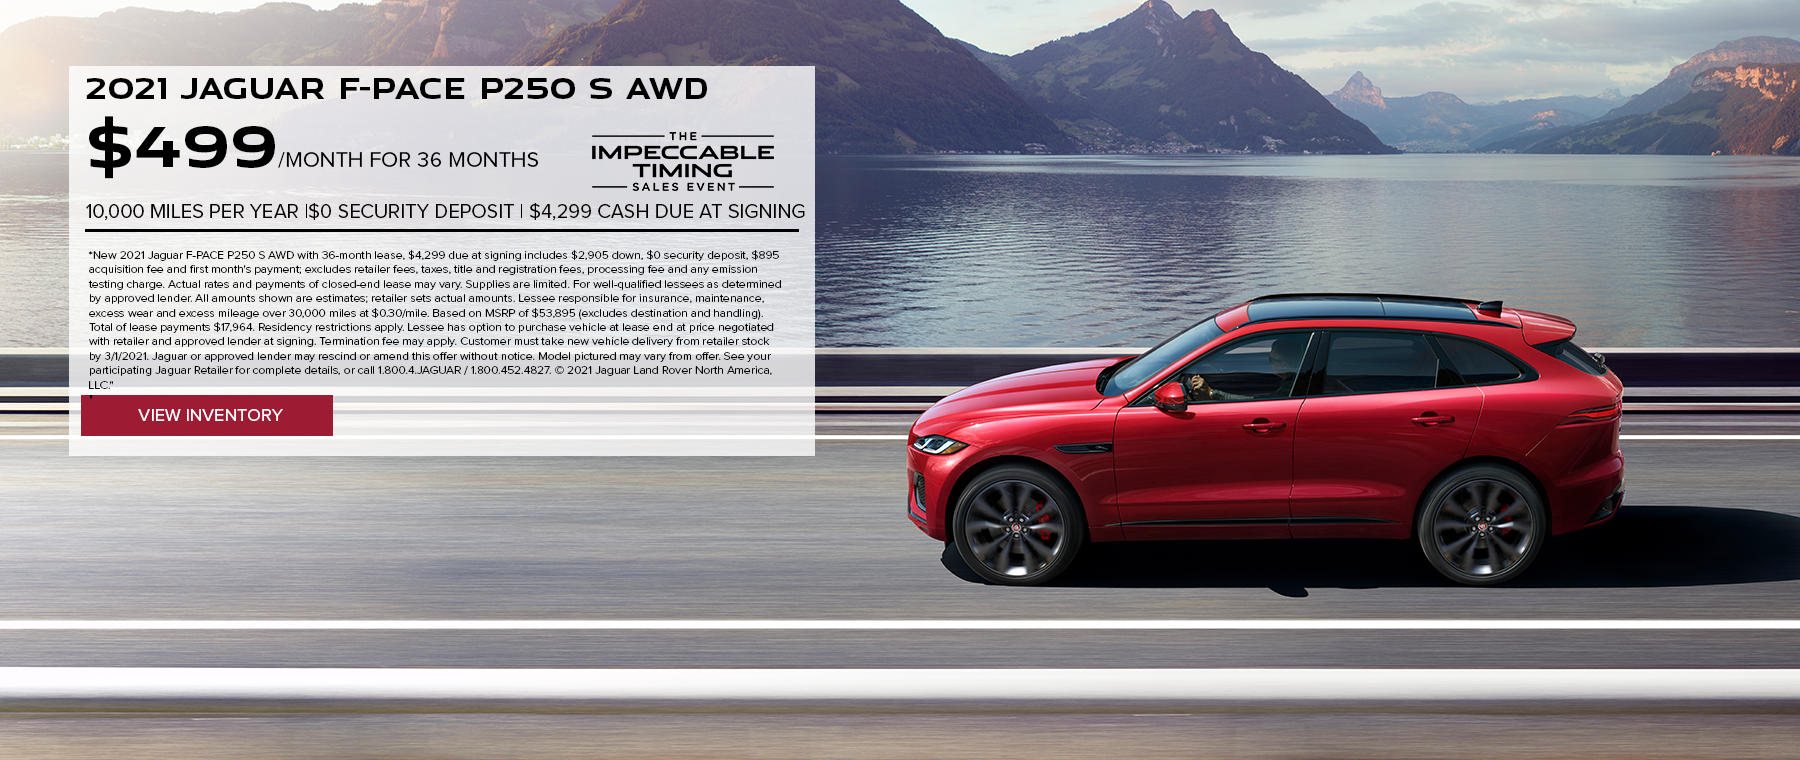 NEW 2021 JAGUAR F-PACE P250 S AWD. $499 PER MONTH. 36 MONTH LEASE TERM. $4,299 CASH DUE AT SIGNING. $0 SECURITY DEPOSIT. 10,000 MILES PER YEAR. EXCLUDES RETAILER FEES, TAXES, TITLE AND REGISTRATION FEES, PROCESSING FEE AND ANY EMISSION TESTING CHARGE. OFFER ENDS 3/1/2021.